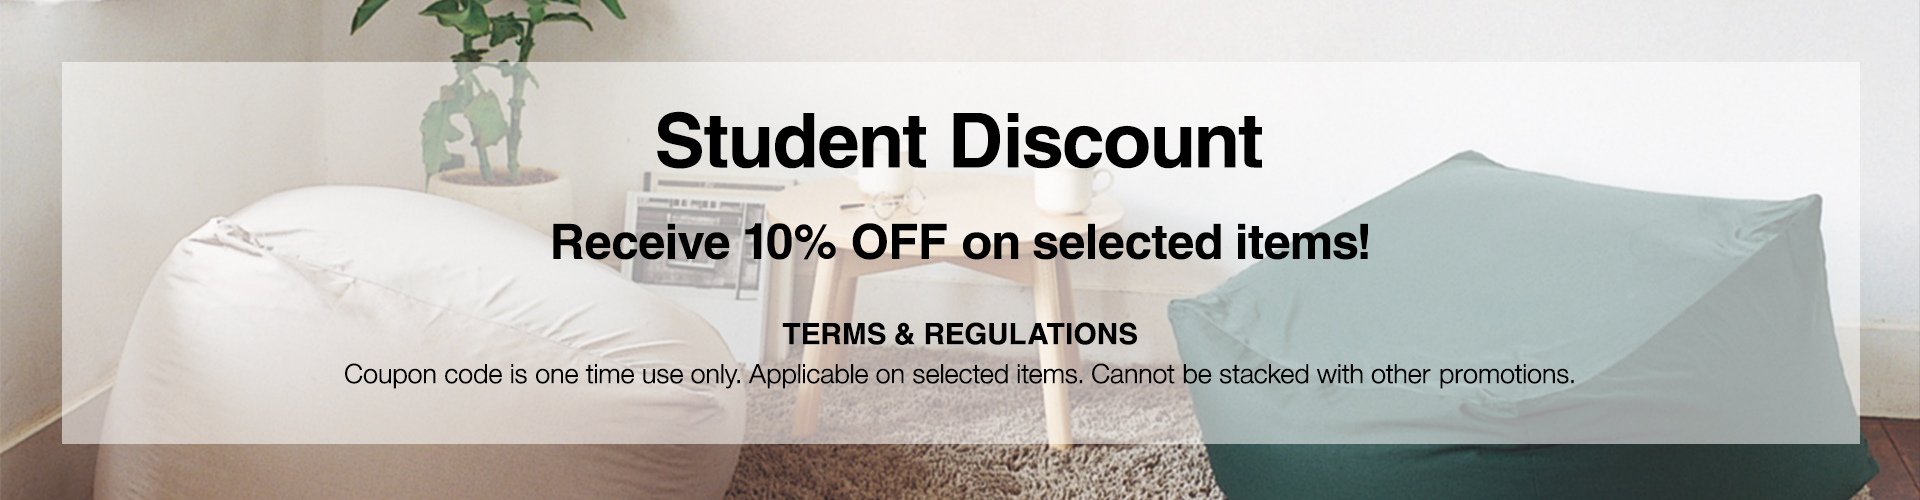 Student Discount Banner